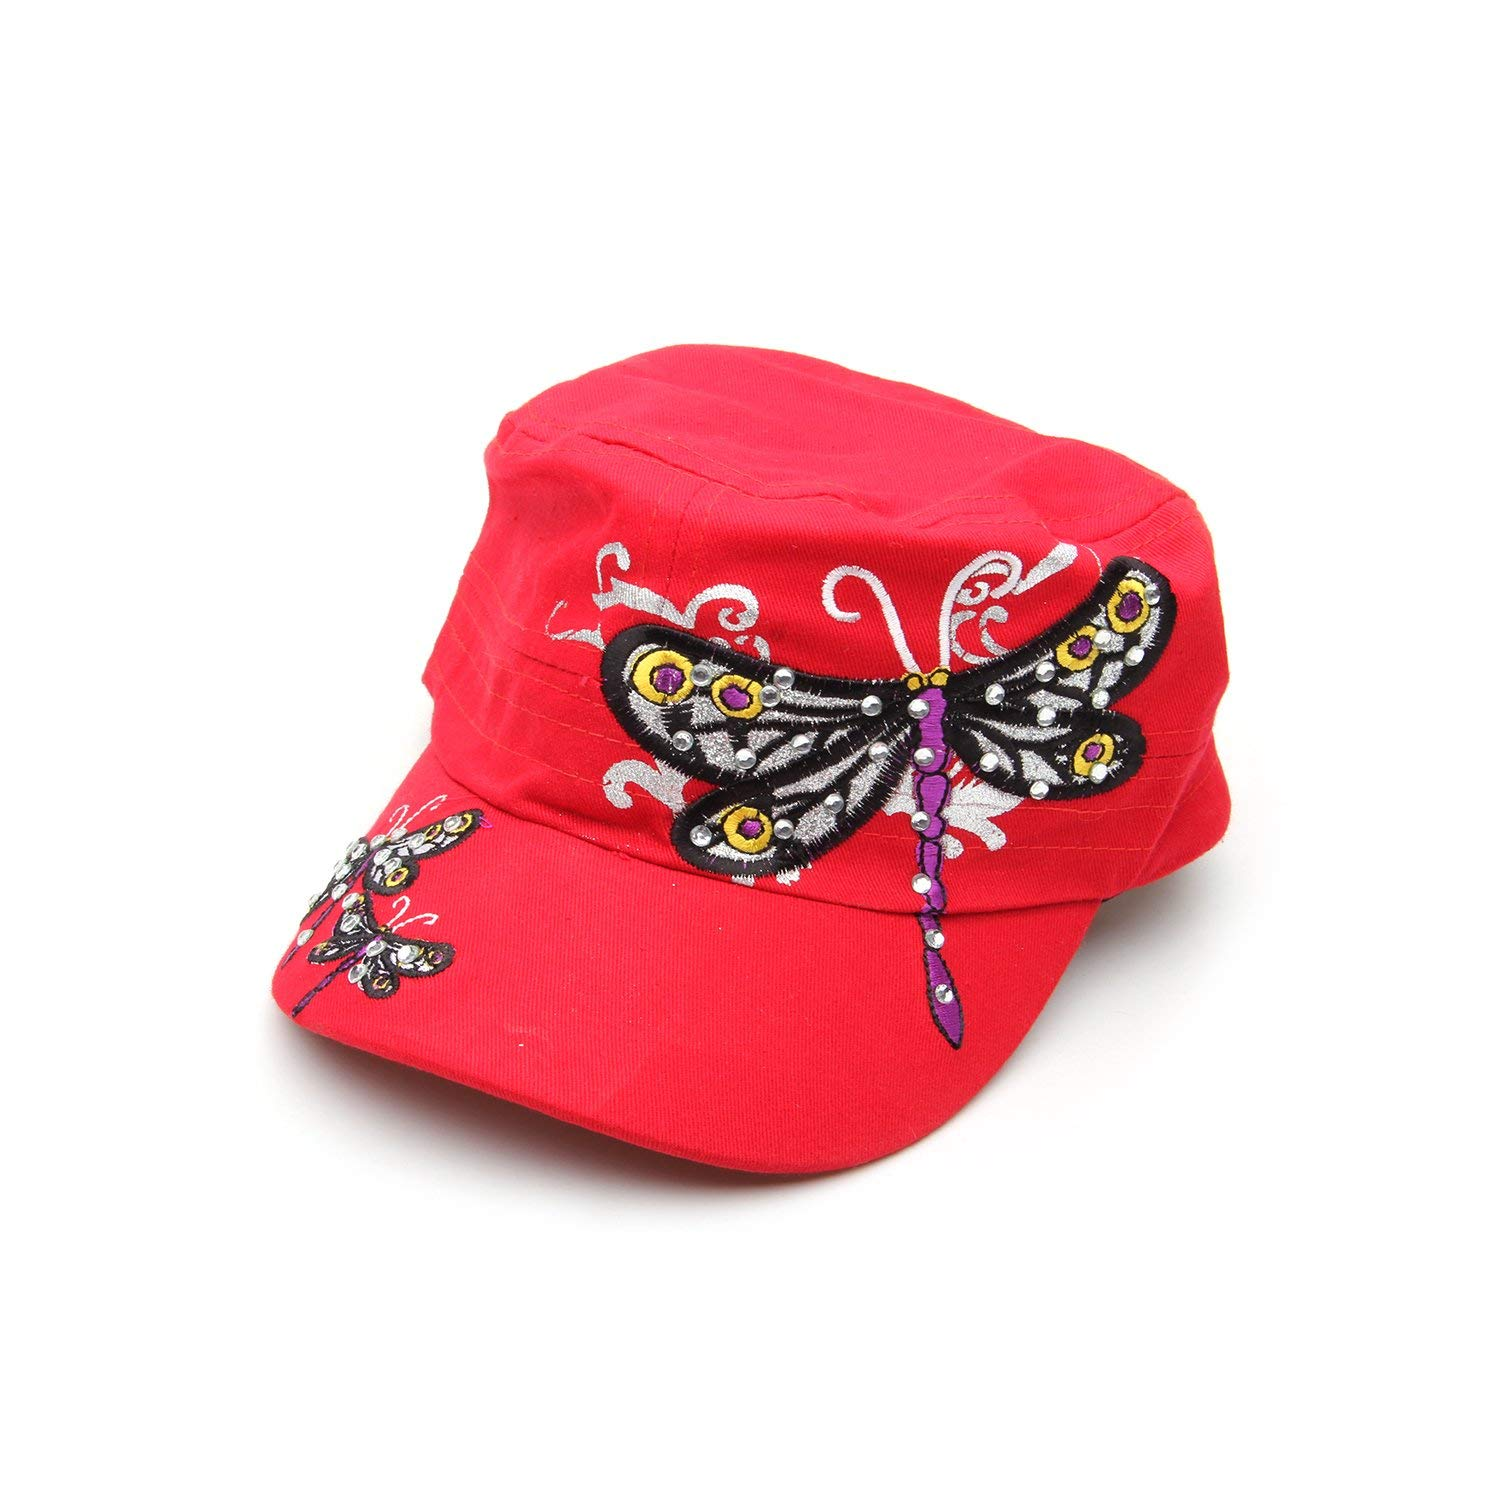 ba7320c9b8 Get Quotations · LianSan Girls Army Cadet Baseball Caps Snapback Hats for  Women Men HT2605